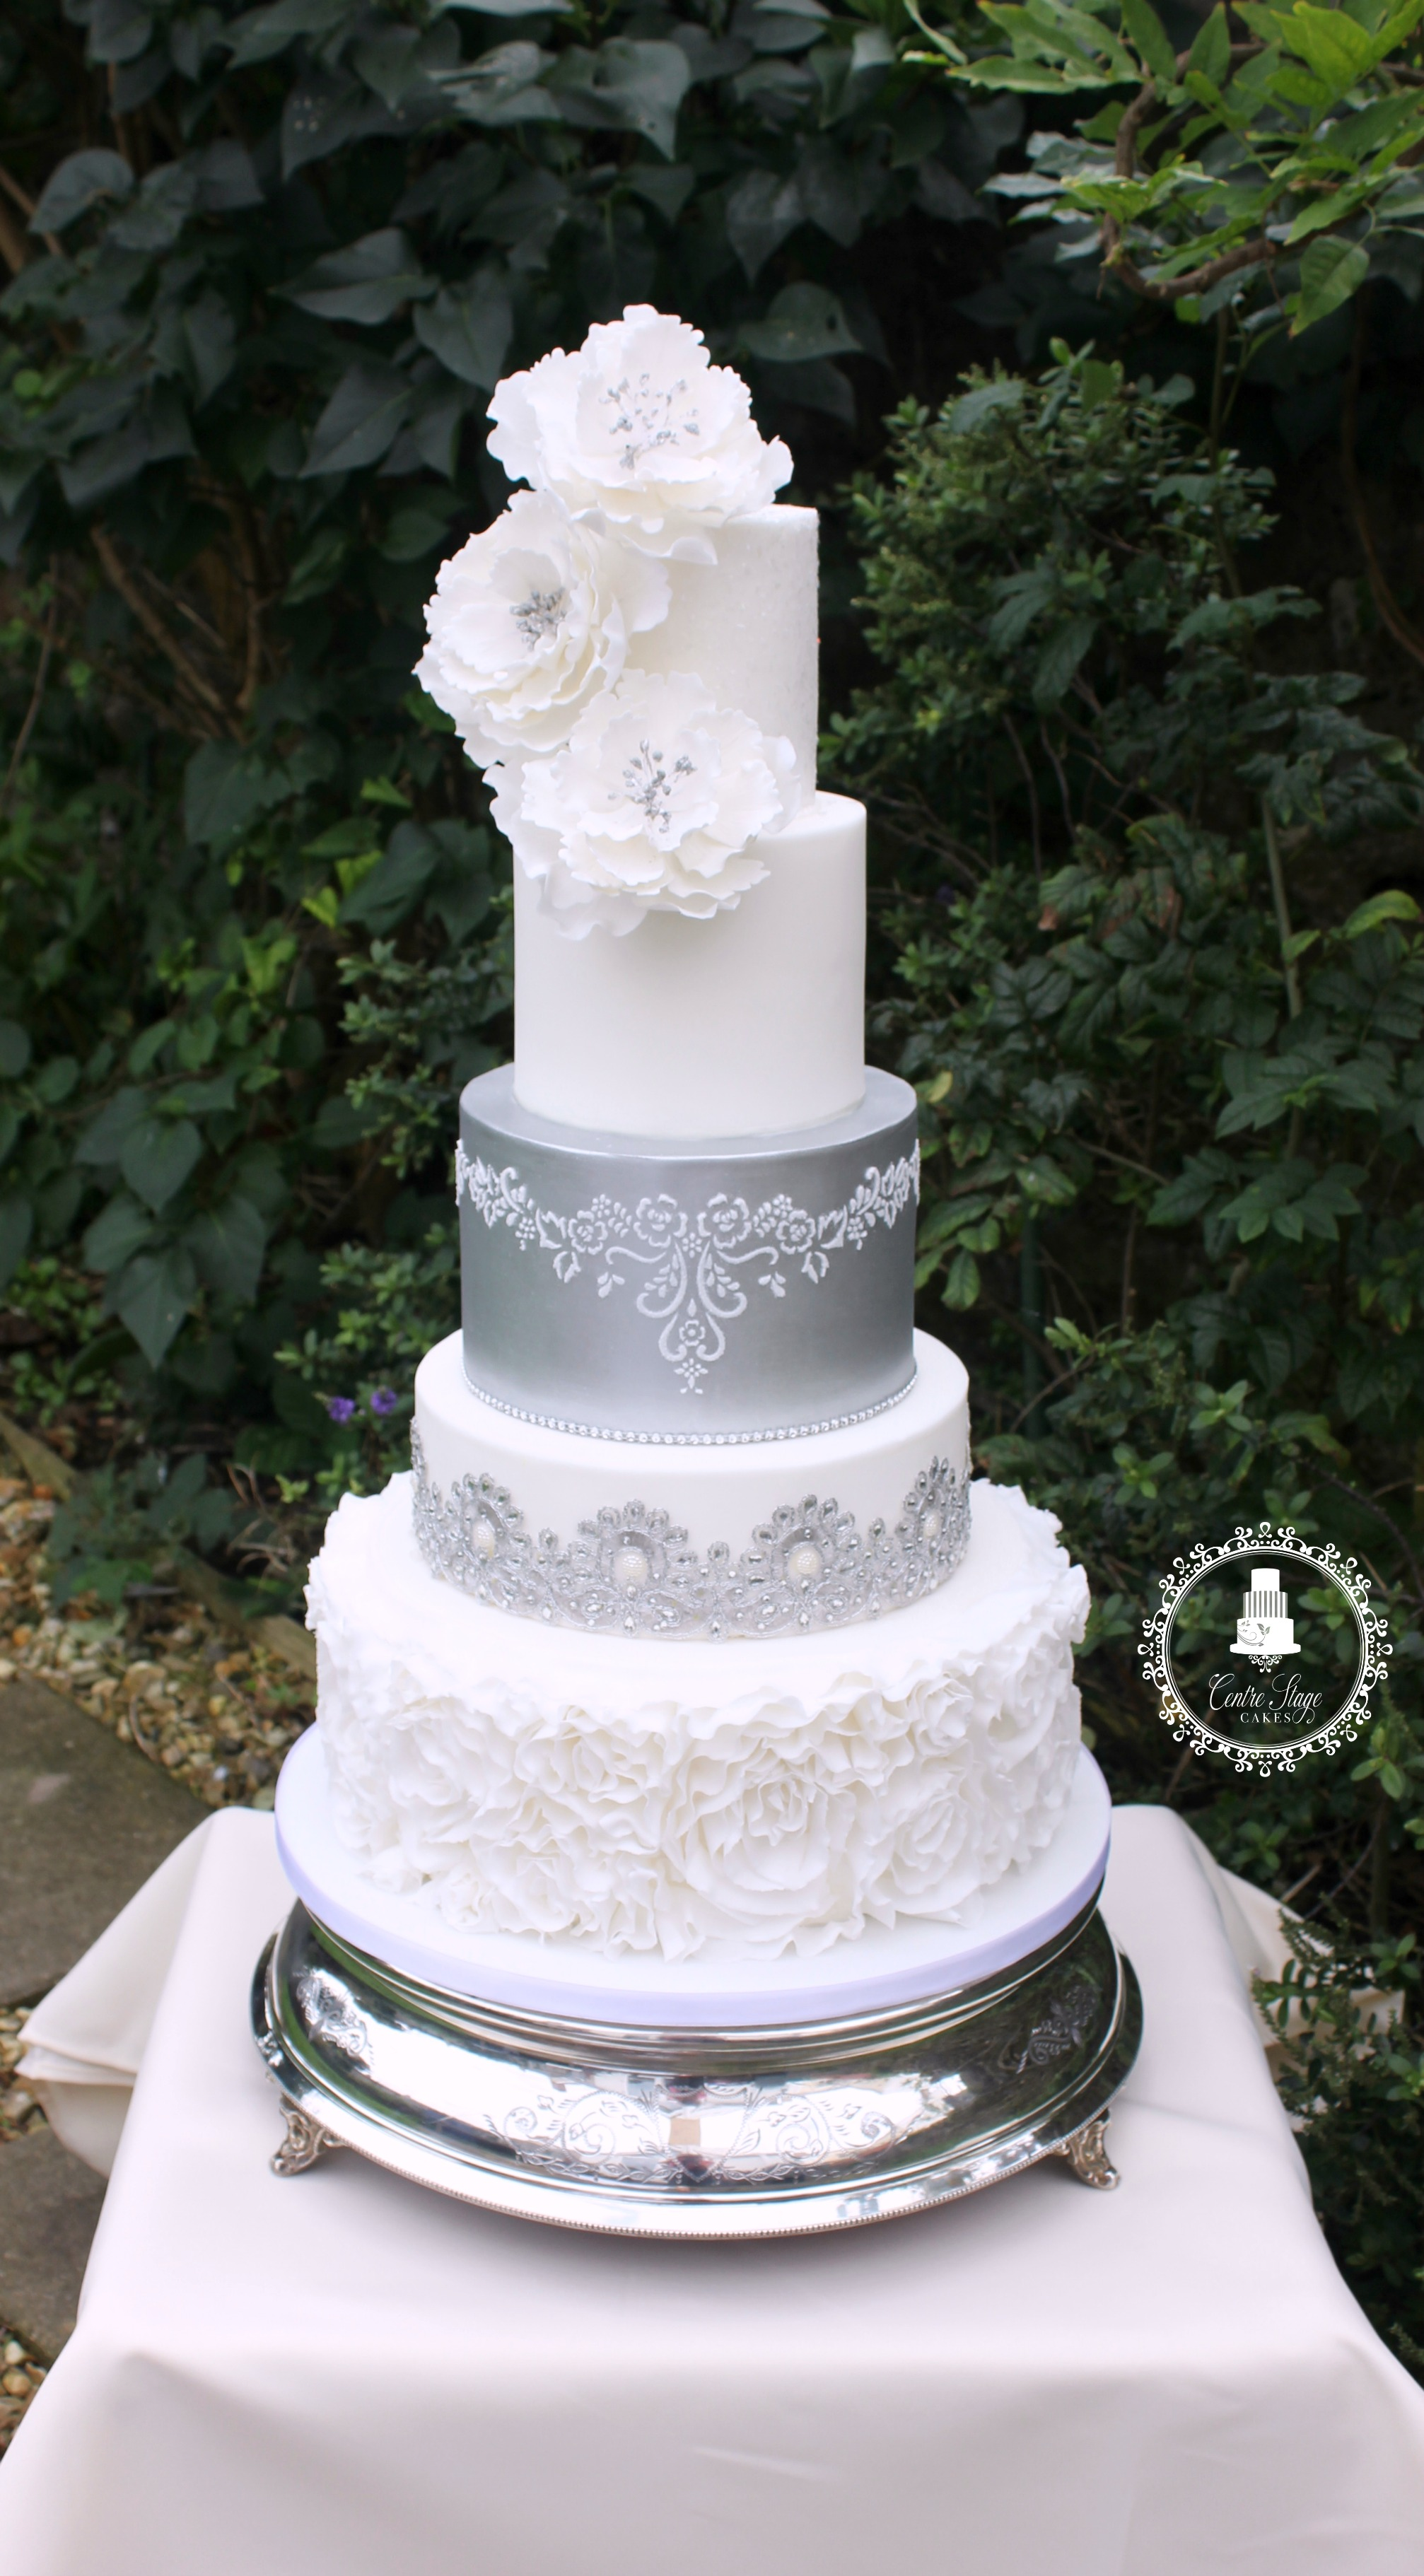 ALL YOU NEED TO KNOW » Centre Stage Cakes | Hand-Made Cakes Porthcawl